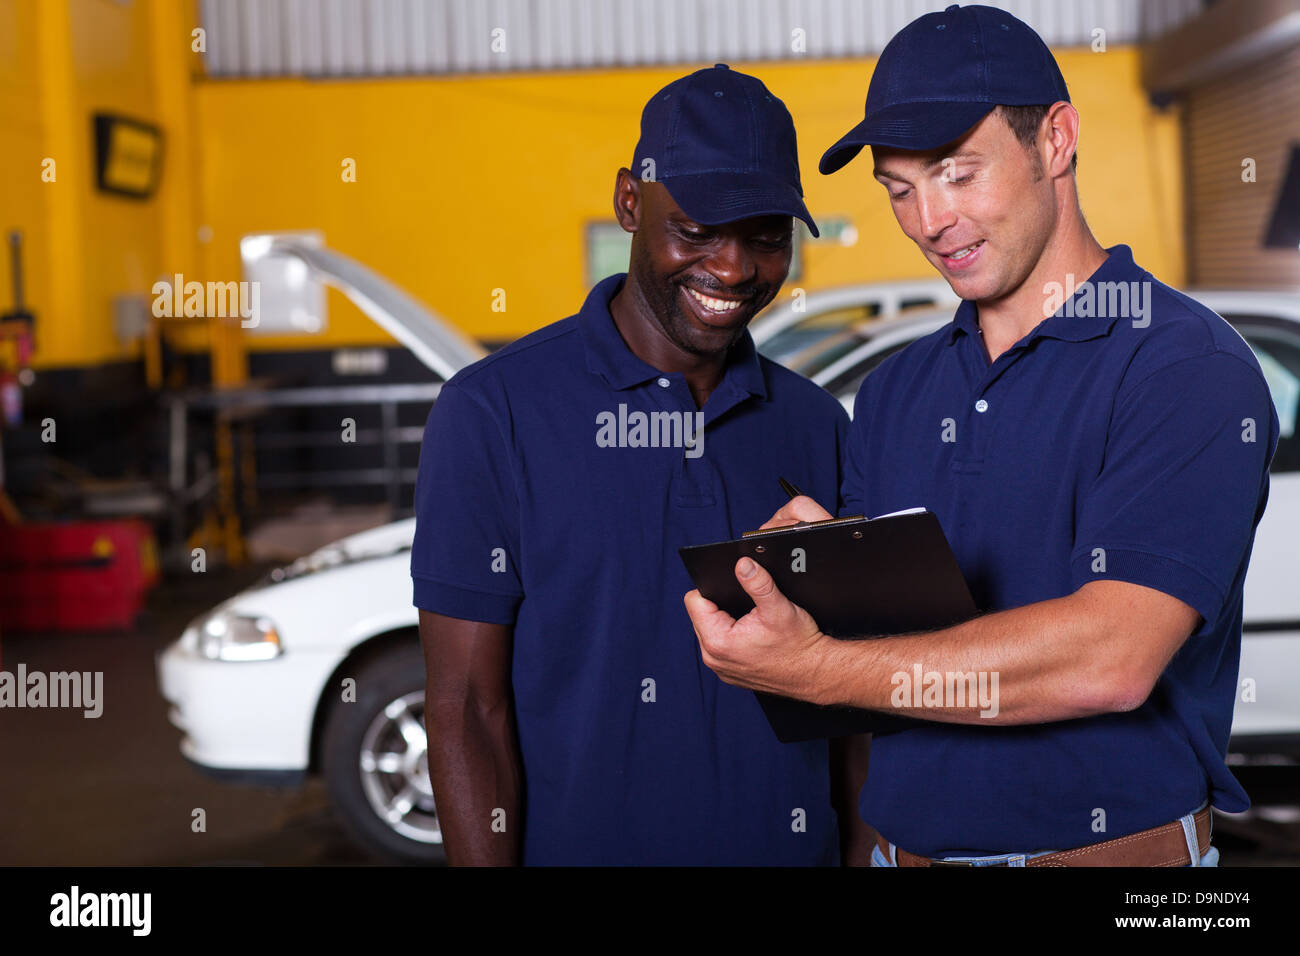 two happy auto mechanics going through checklist inside workshop - Stock Image